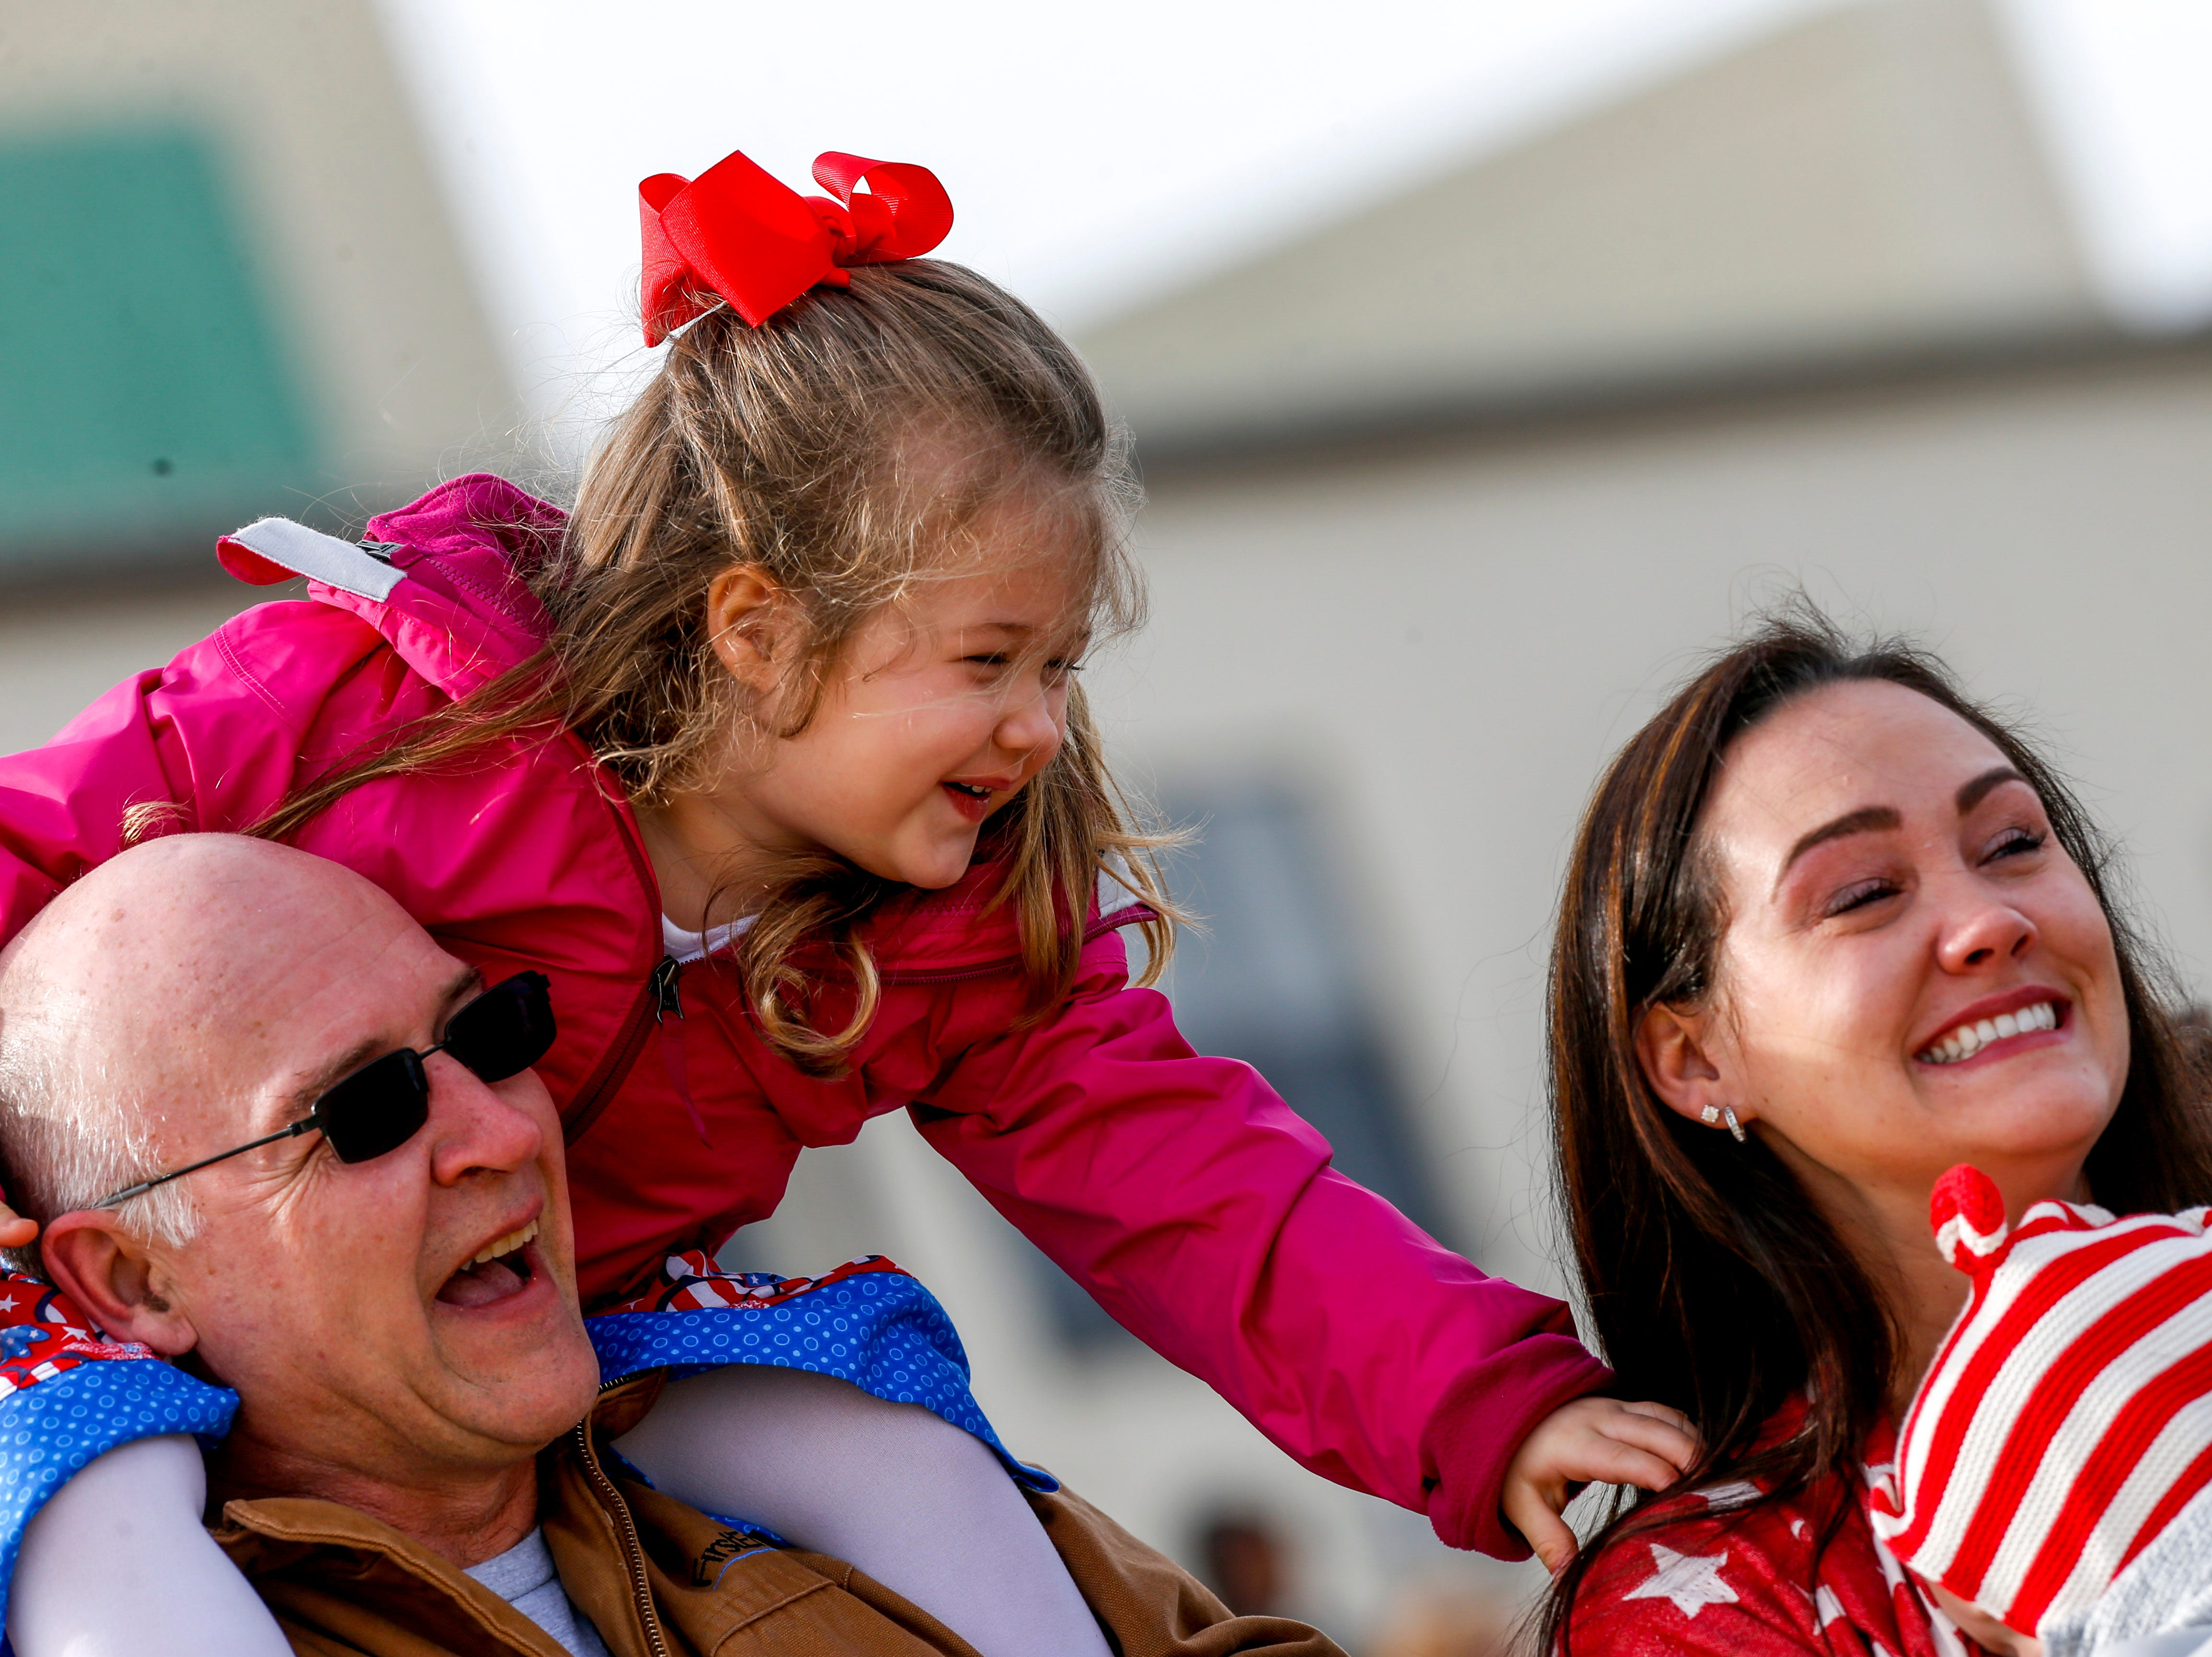 Allison Sterley, 4, tugs on her mother Jessica Sterley's, right, shoulder when realizing her dad is coming home during the return of soldiers from the 101st Combat Aviation Brigade of 101st Airborne Division (Air Assault) at Campbell Army Air Field in Fort Campbell, KY., on Sunday, March 10, 2019.